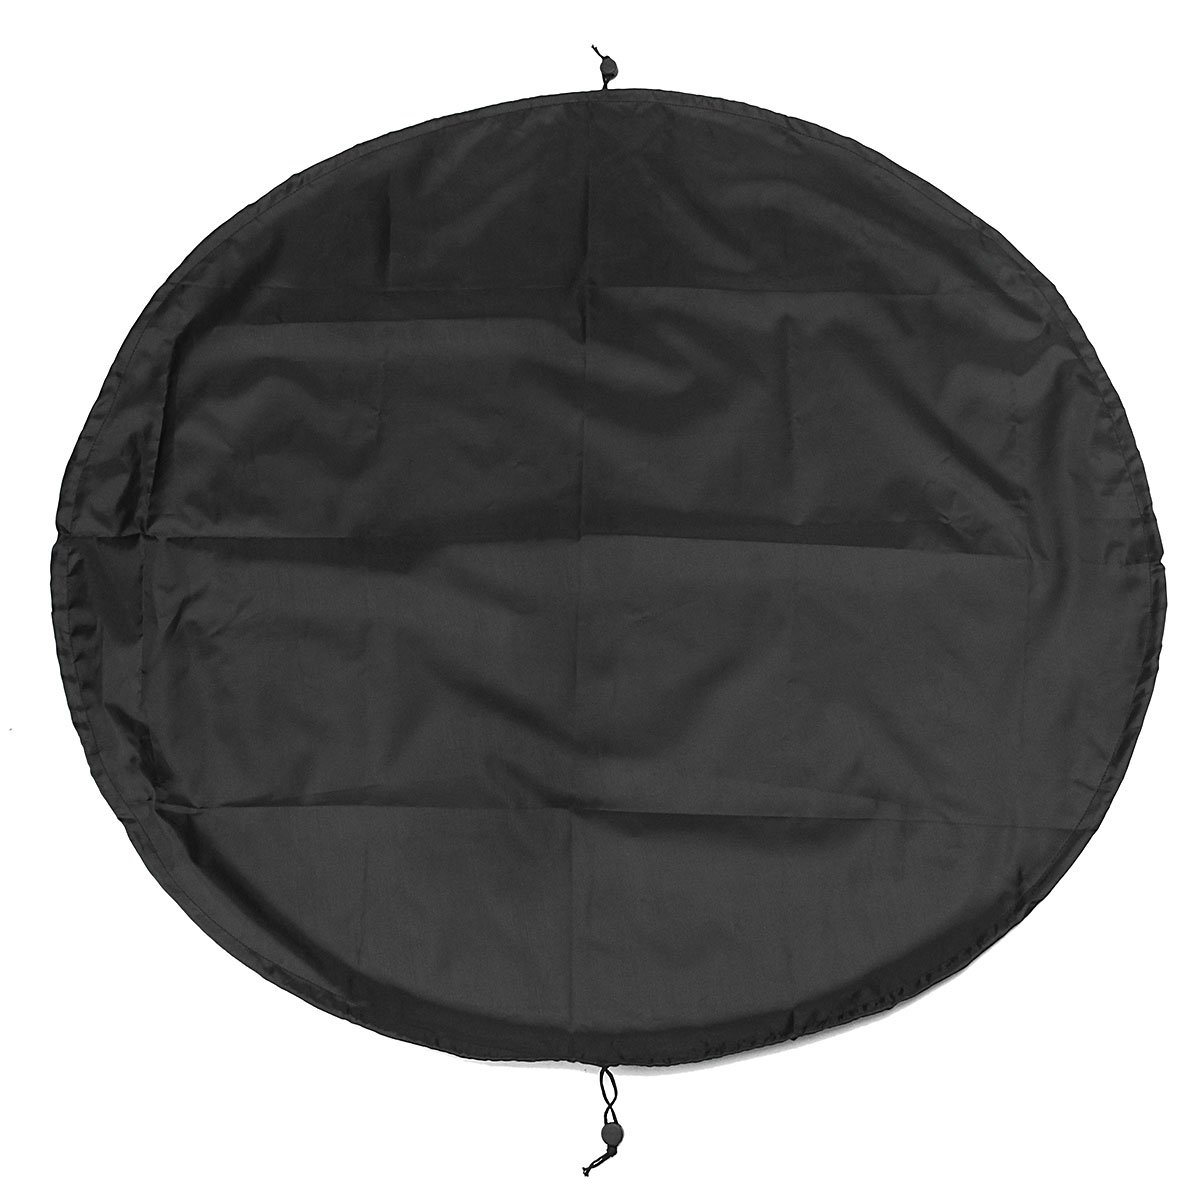 Wincom Dishman Water Sports WD Nylon 90cm Surfing Wetsuit Diving Suit Change Bag Mat Waterproof Bag Carry Pack Pouch by Wincom Dishman (Image #4)